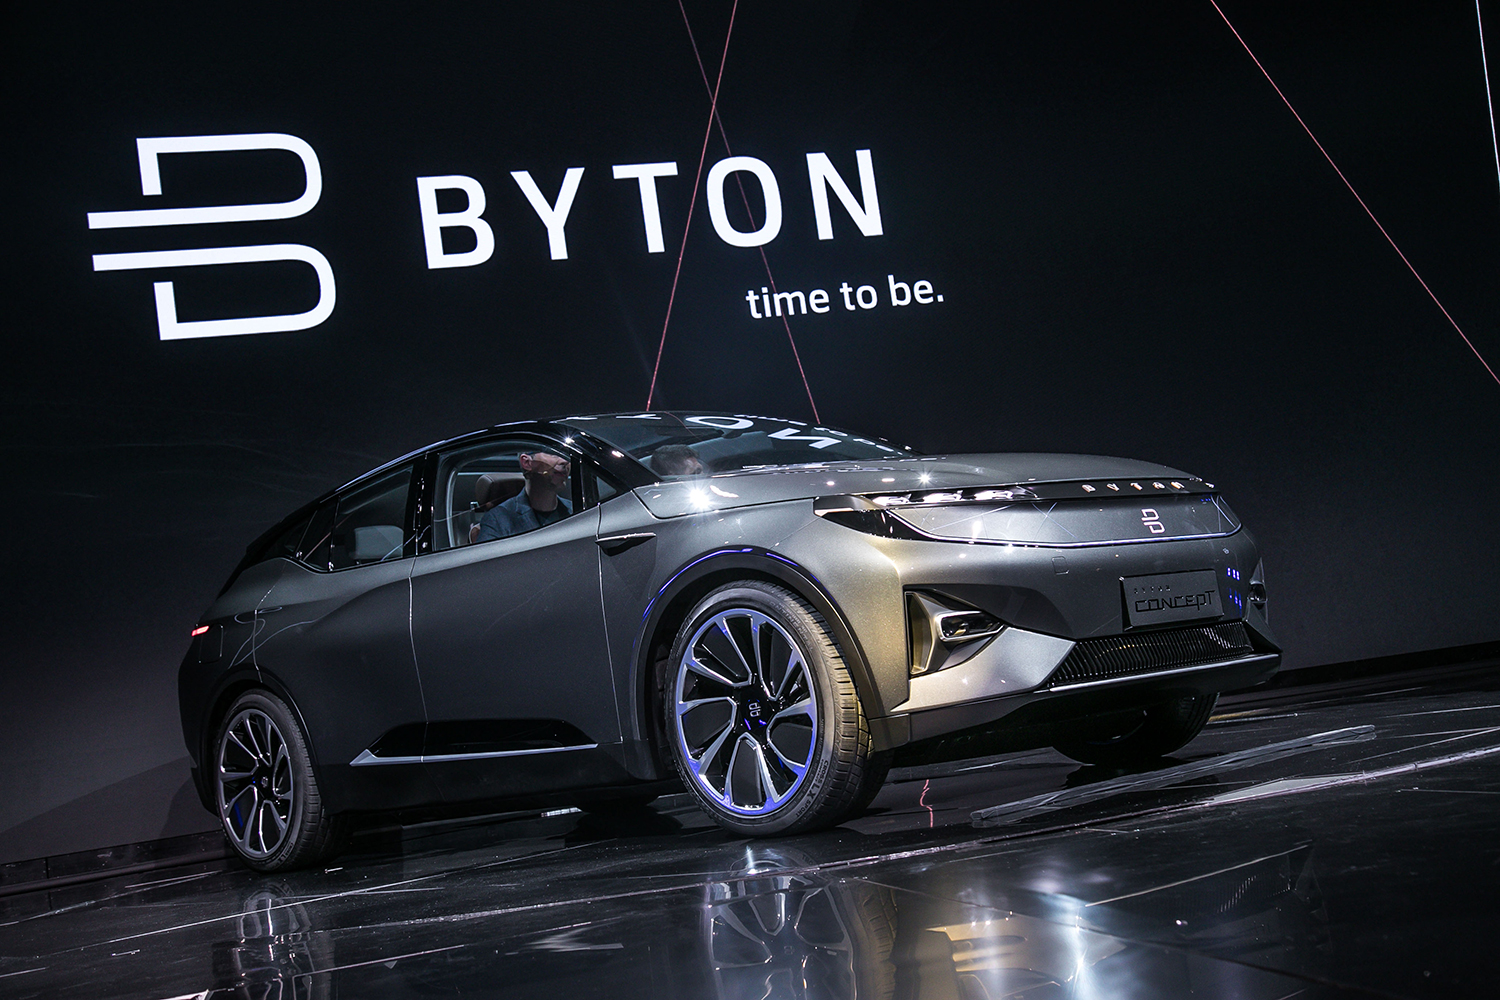 Byton Concept Standard Ces Car 043416316 on car b pillar